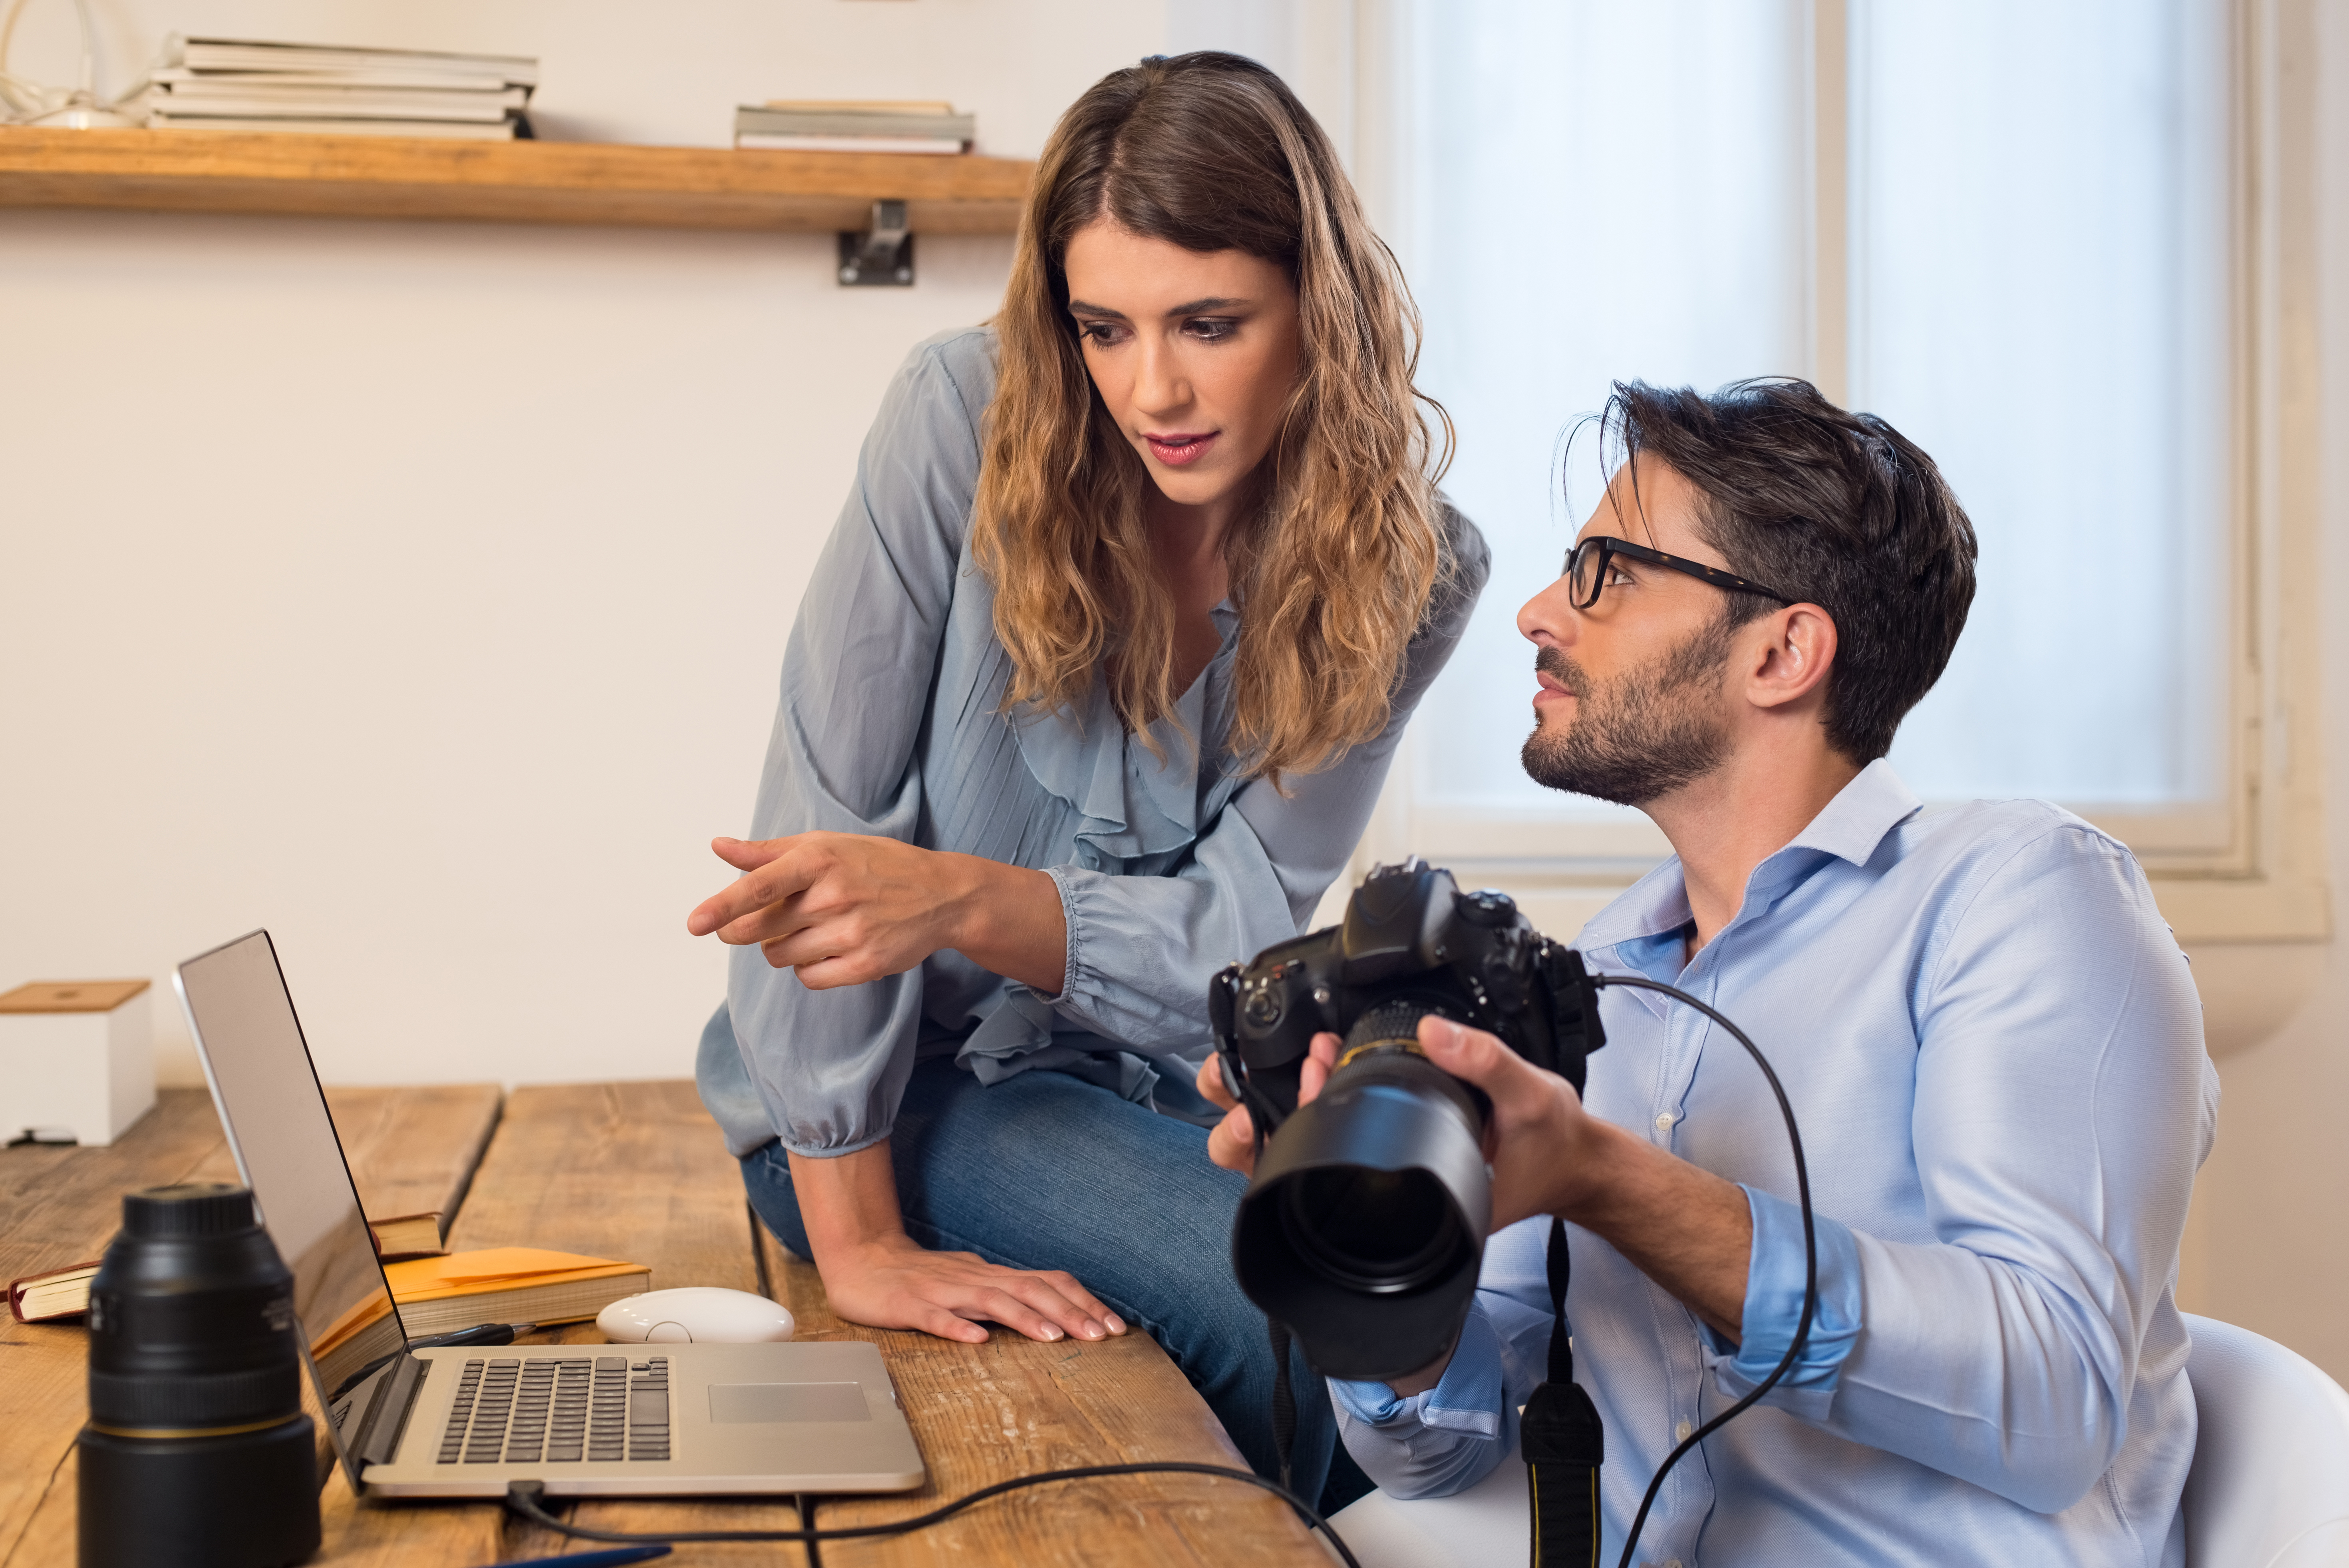 Photographer with model looking at photos